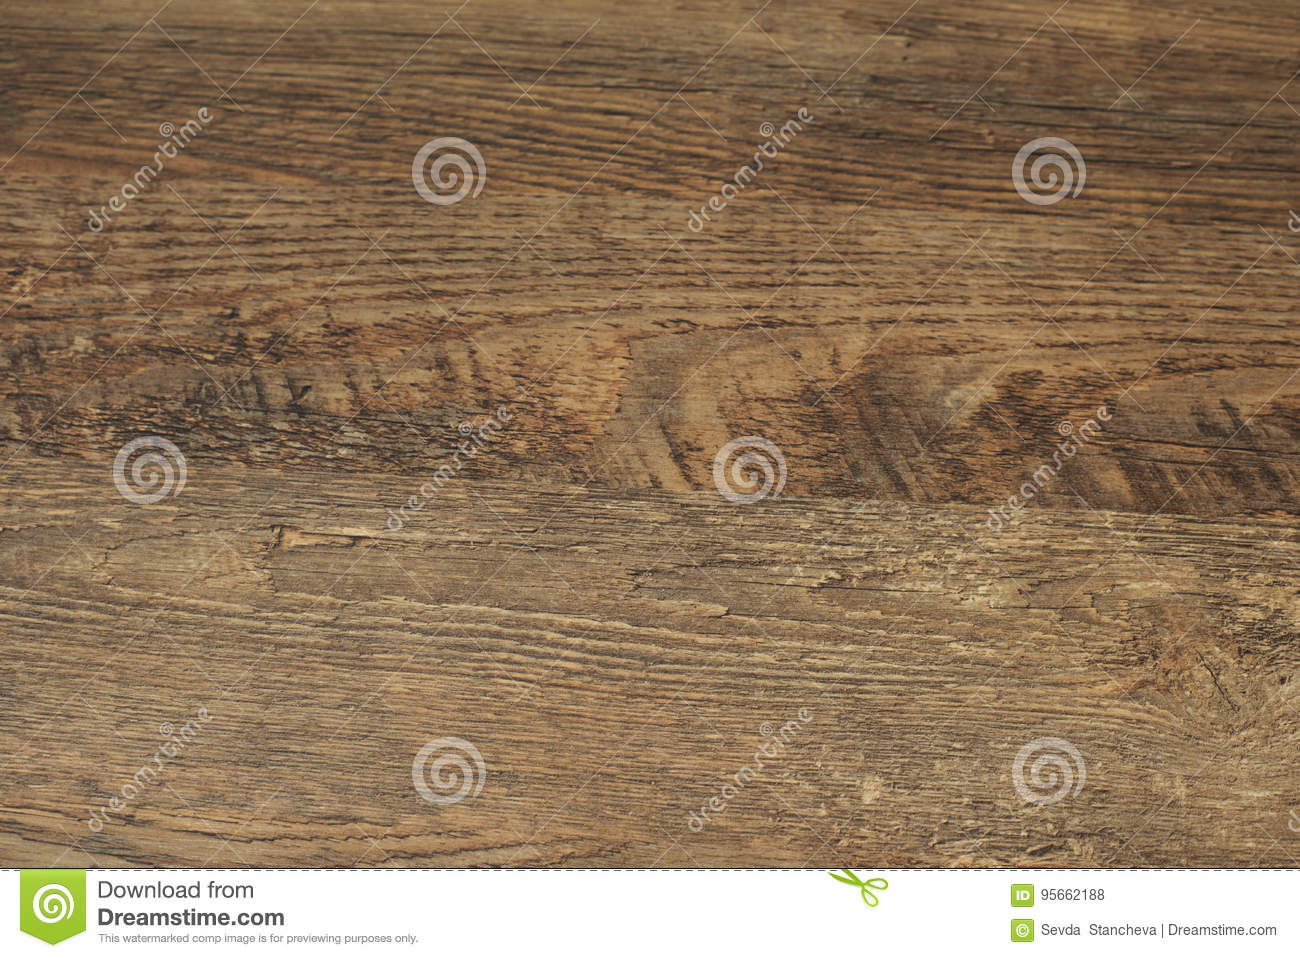 Download Wood Background. Old Wood Texture. Wooden Plank Grain Background.  Striped Timber Desk